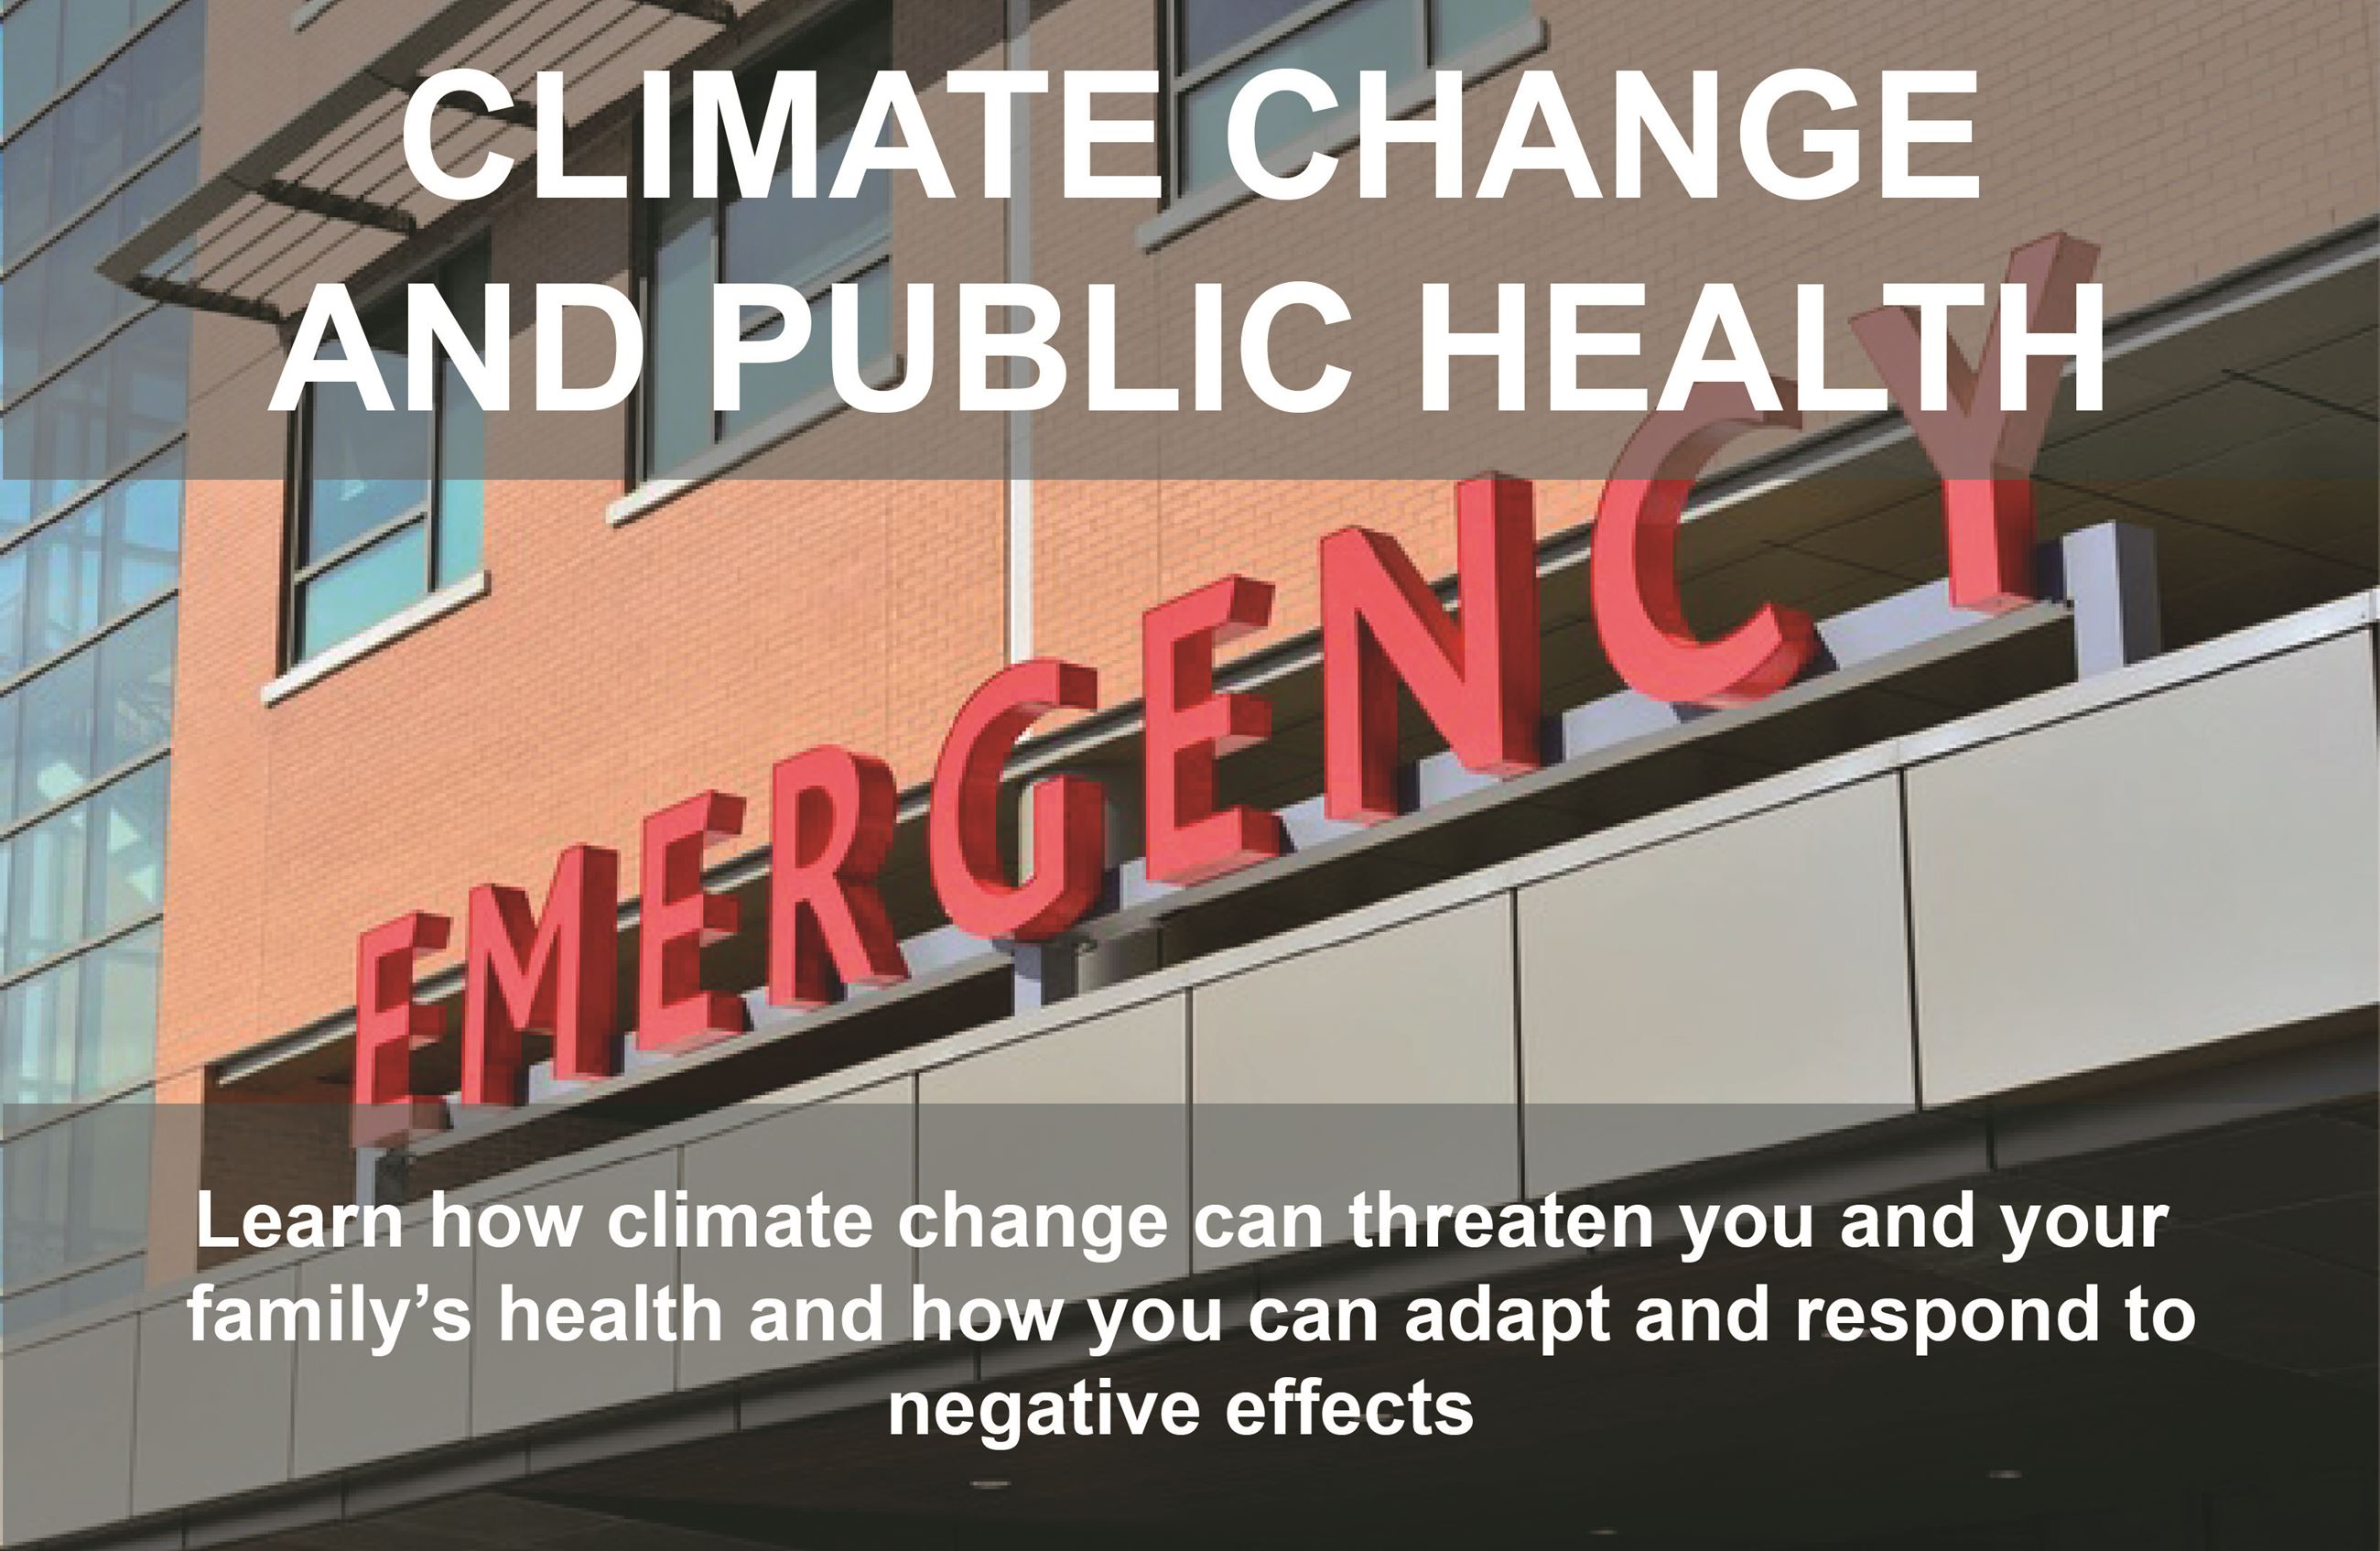 CC and Public Health